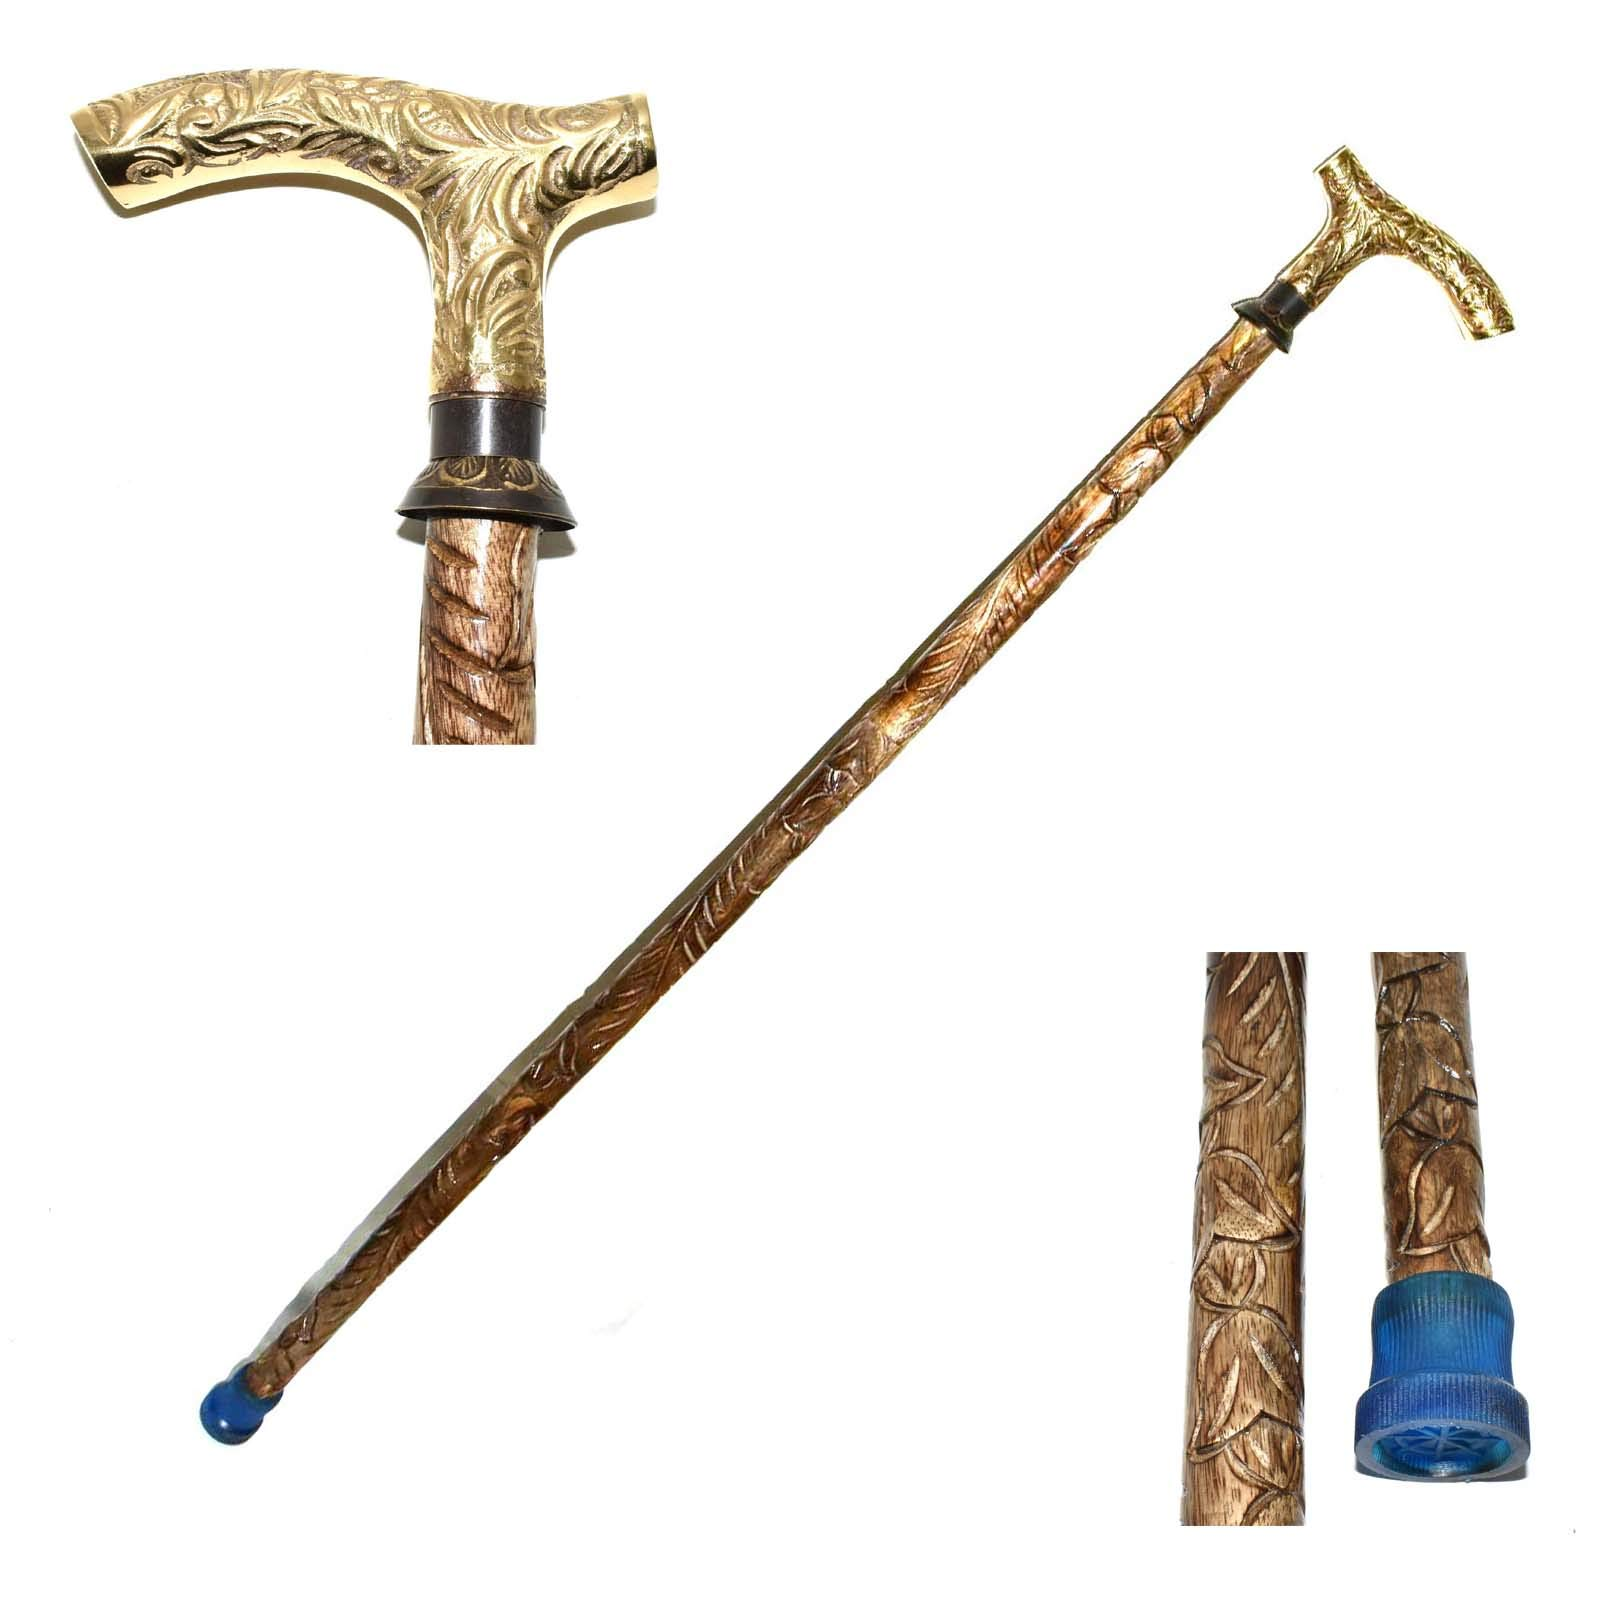 Nautical World Wood Walking Stick with T Shape Brass Handle, Walking Cane, Affordable Gift Decorative Walking Cane Fashion Statement for Men/Women/Seniors/Grandparents! Item New Year Gifts, Gifts for